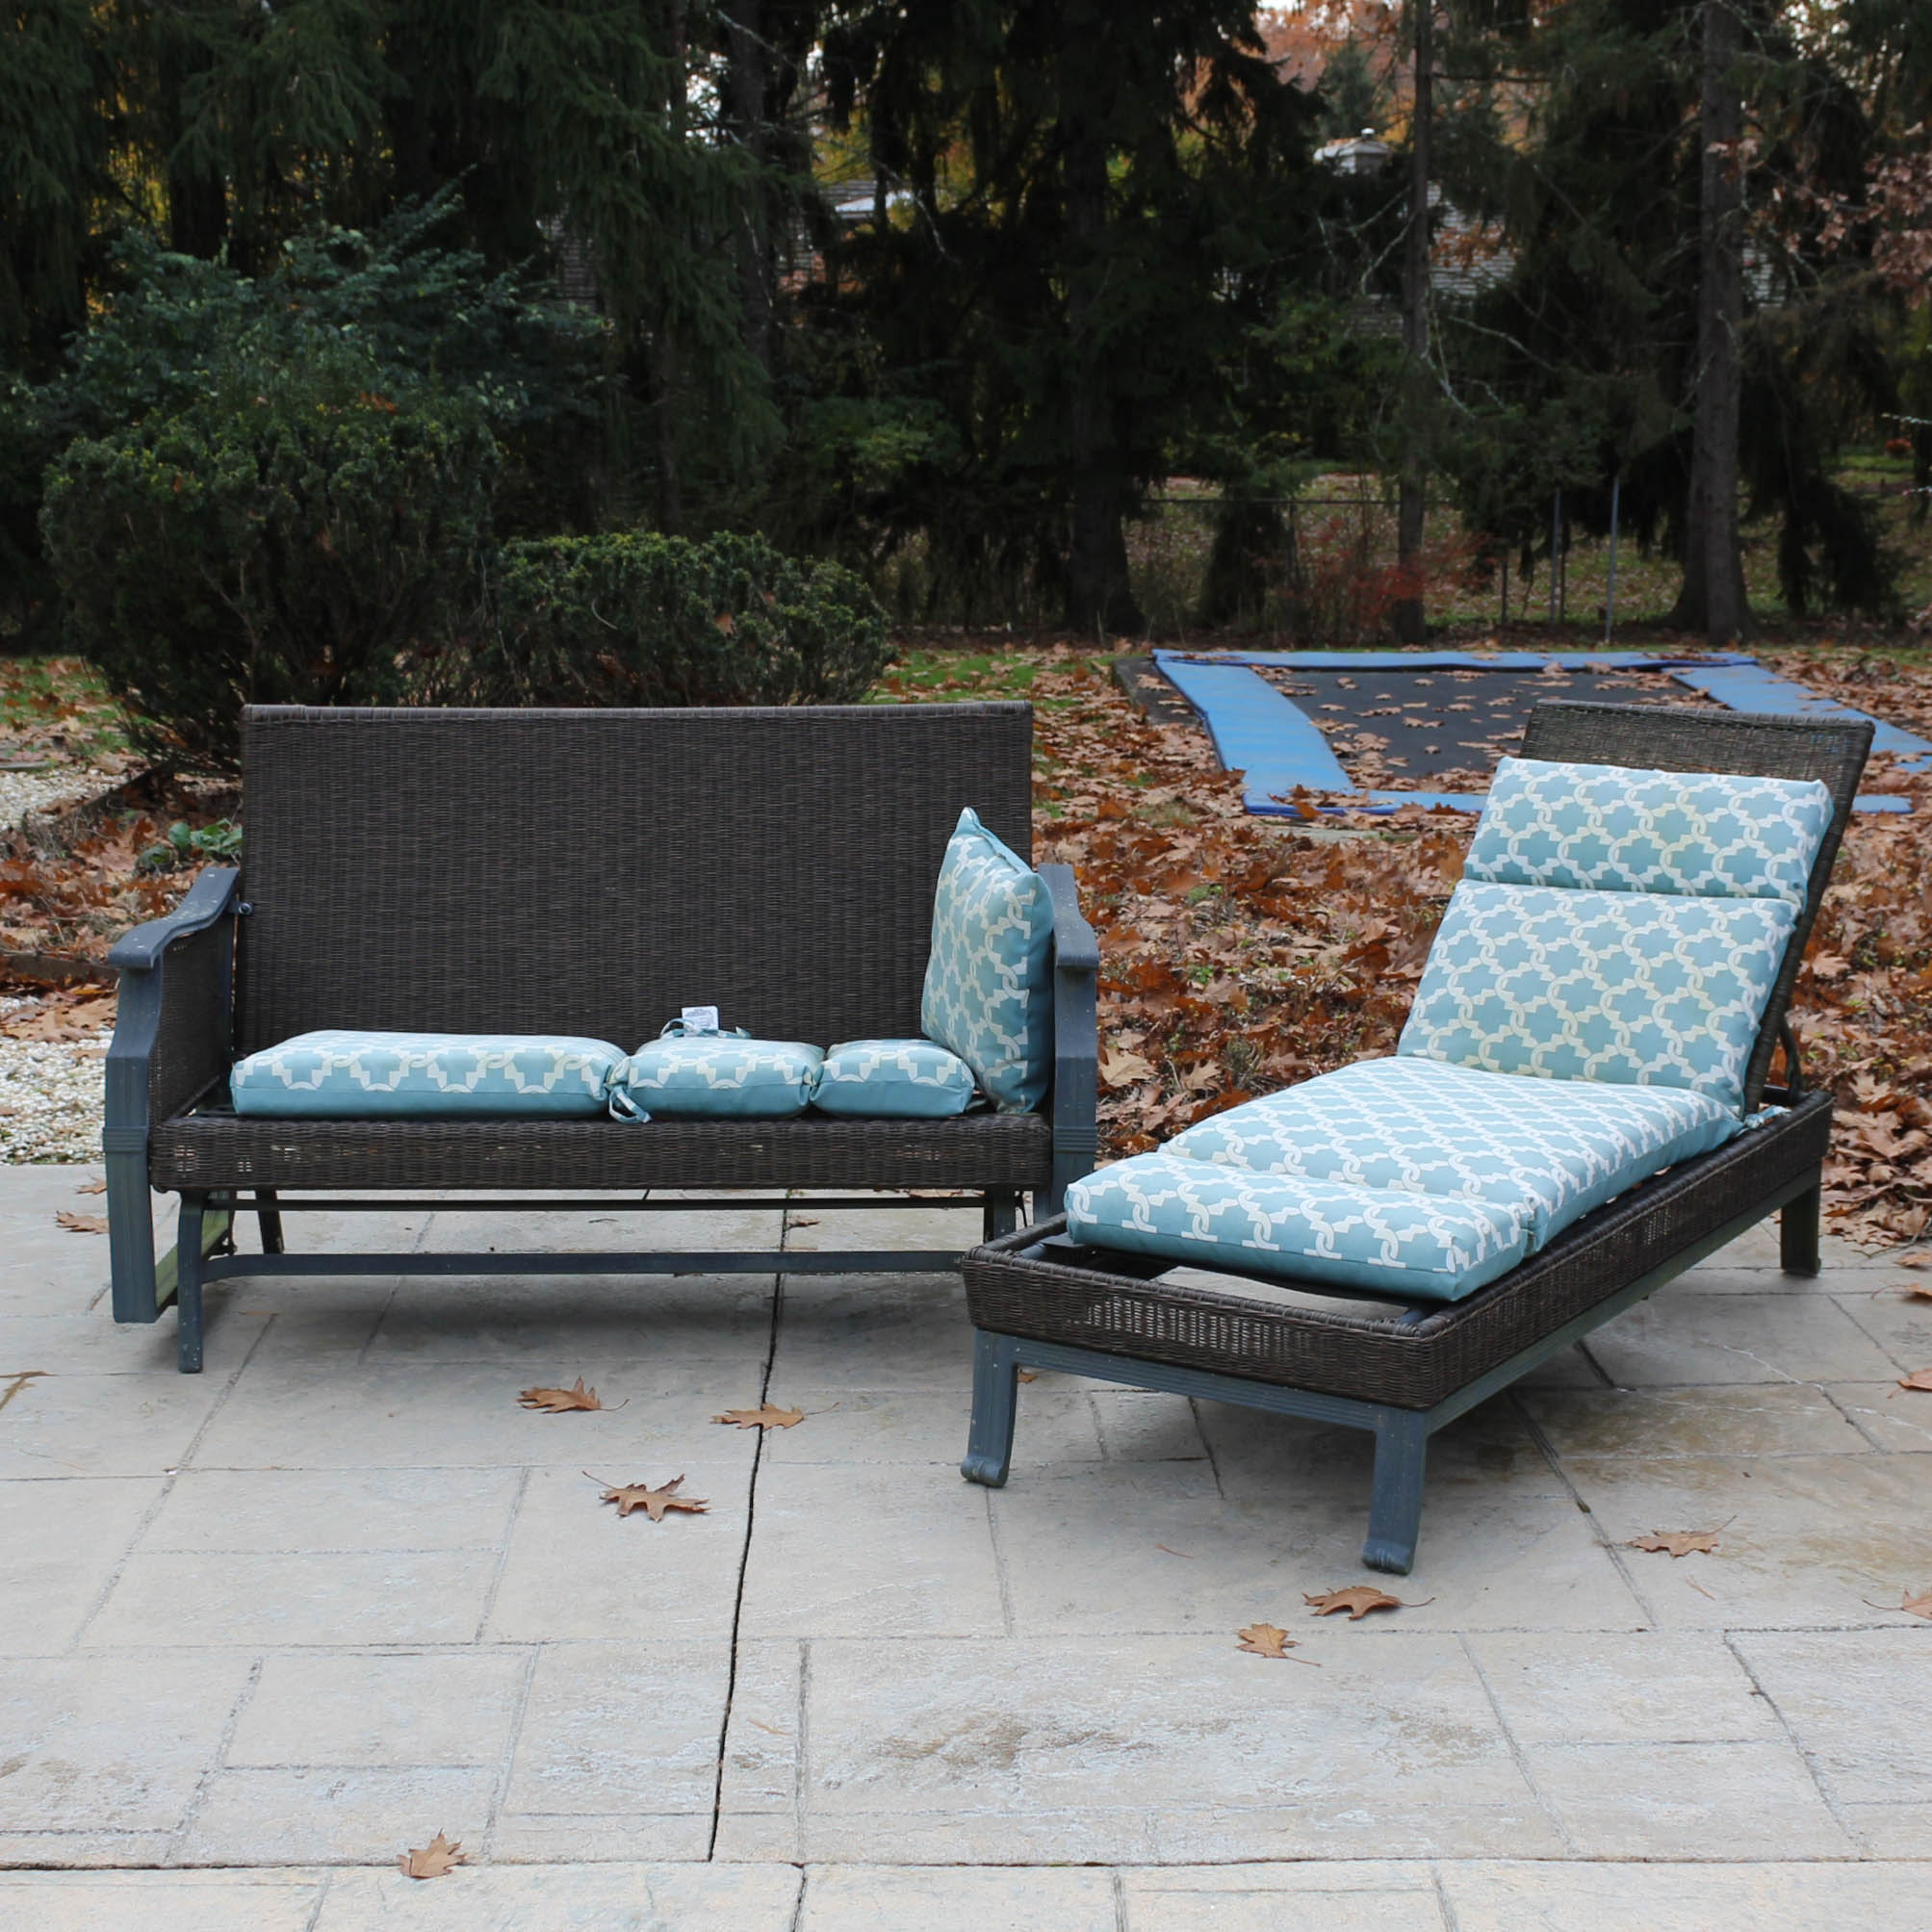 Hampton Bay All-Weather Wicker Glider Settee and Chaise Lounge